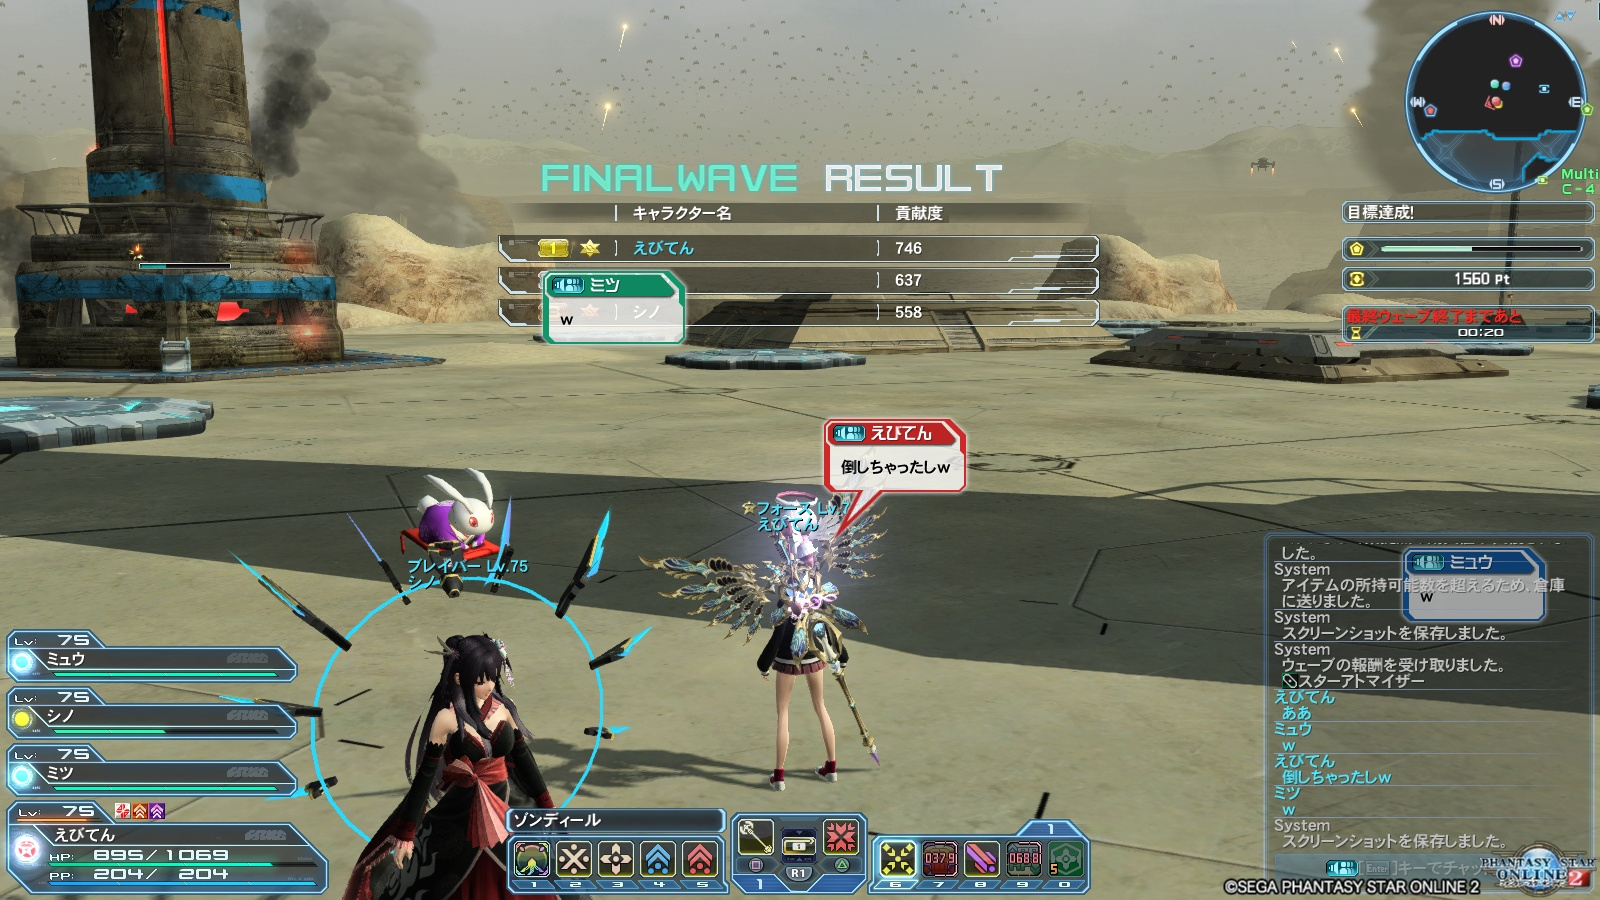 FINAL WAVE CLEAR